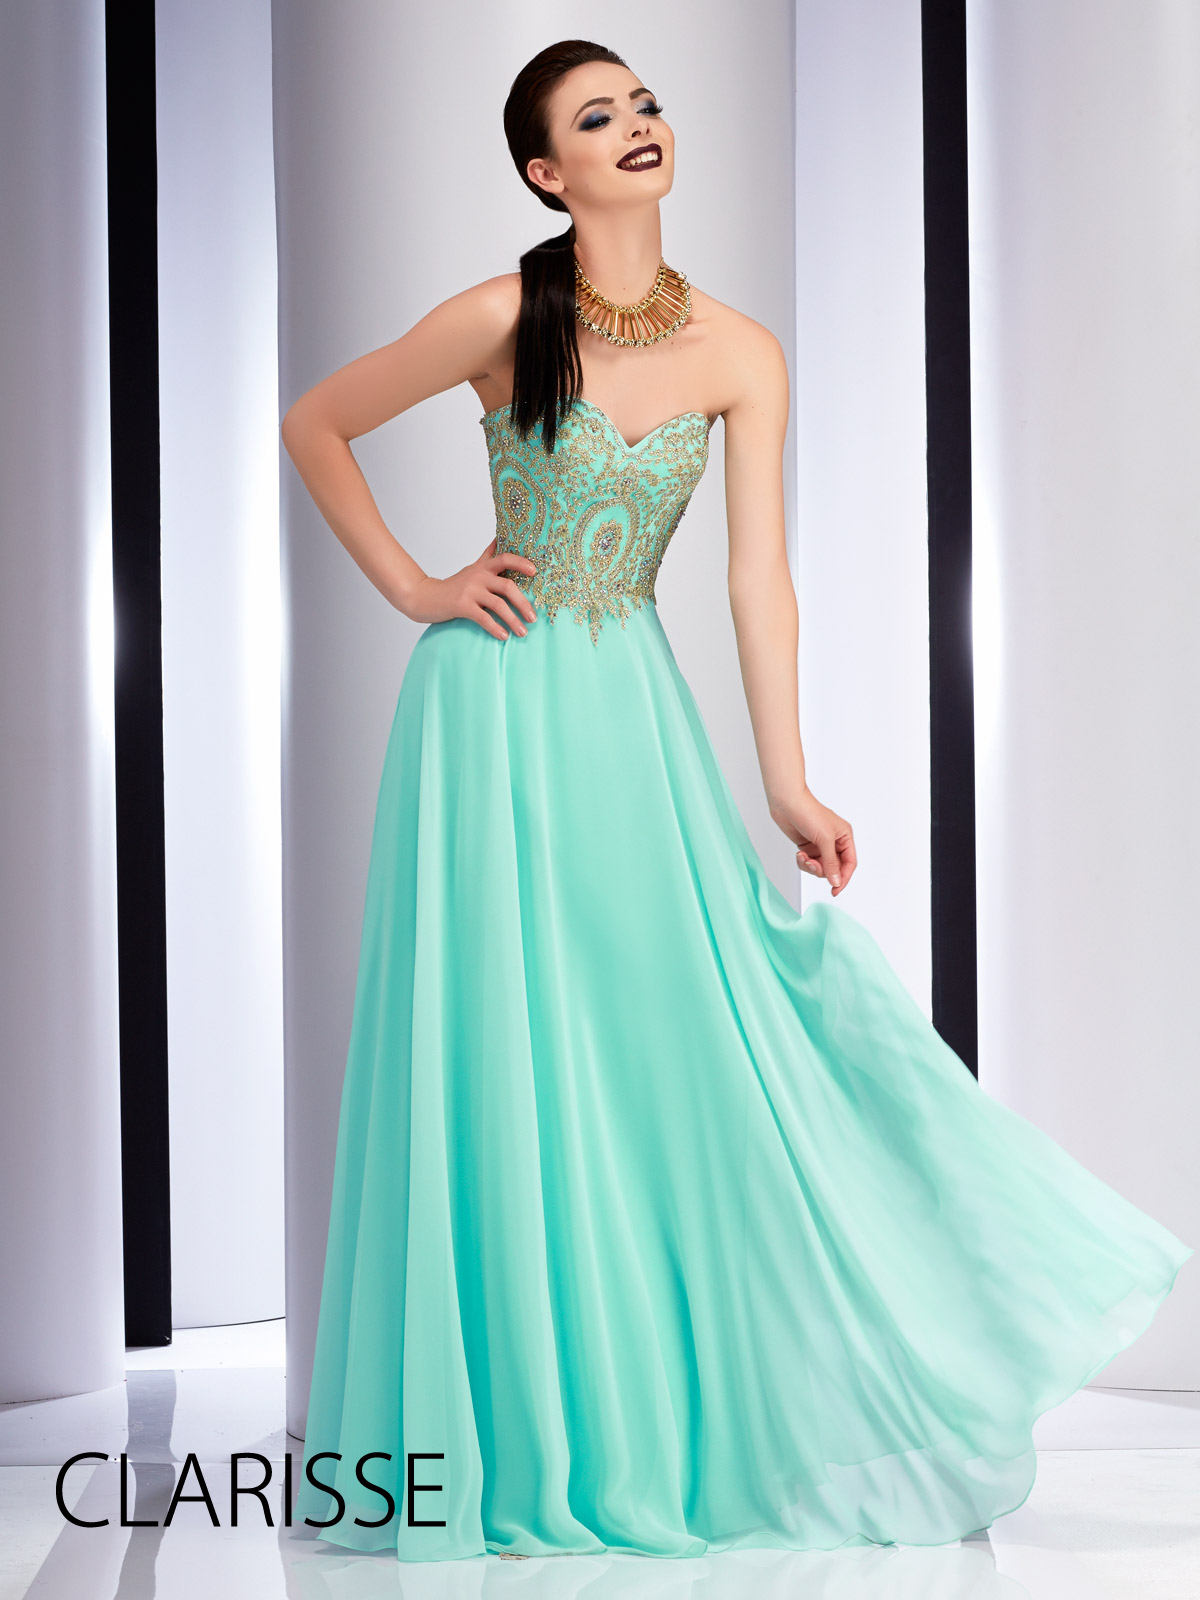 Gorgeous long clarisse prom dress style in mint features a